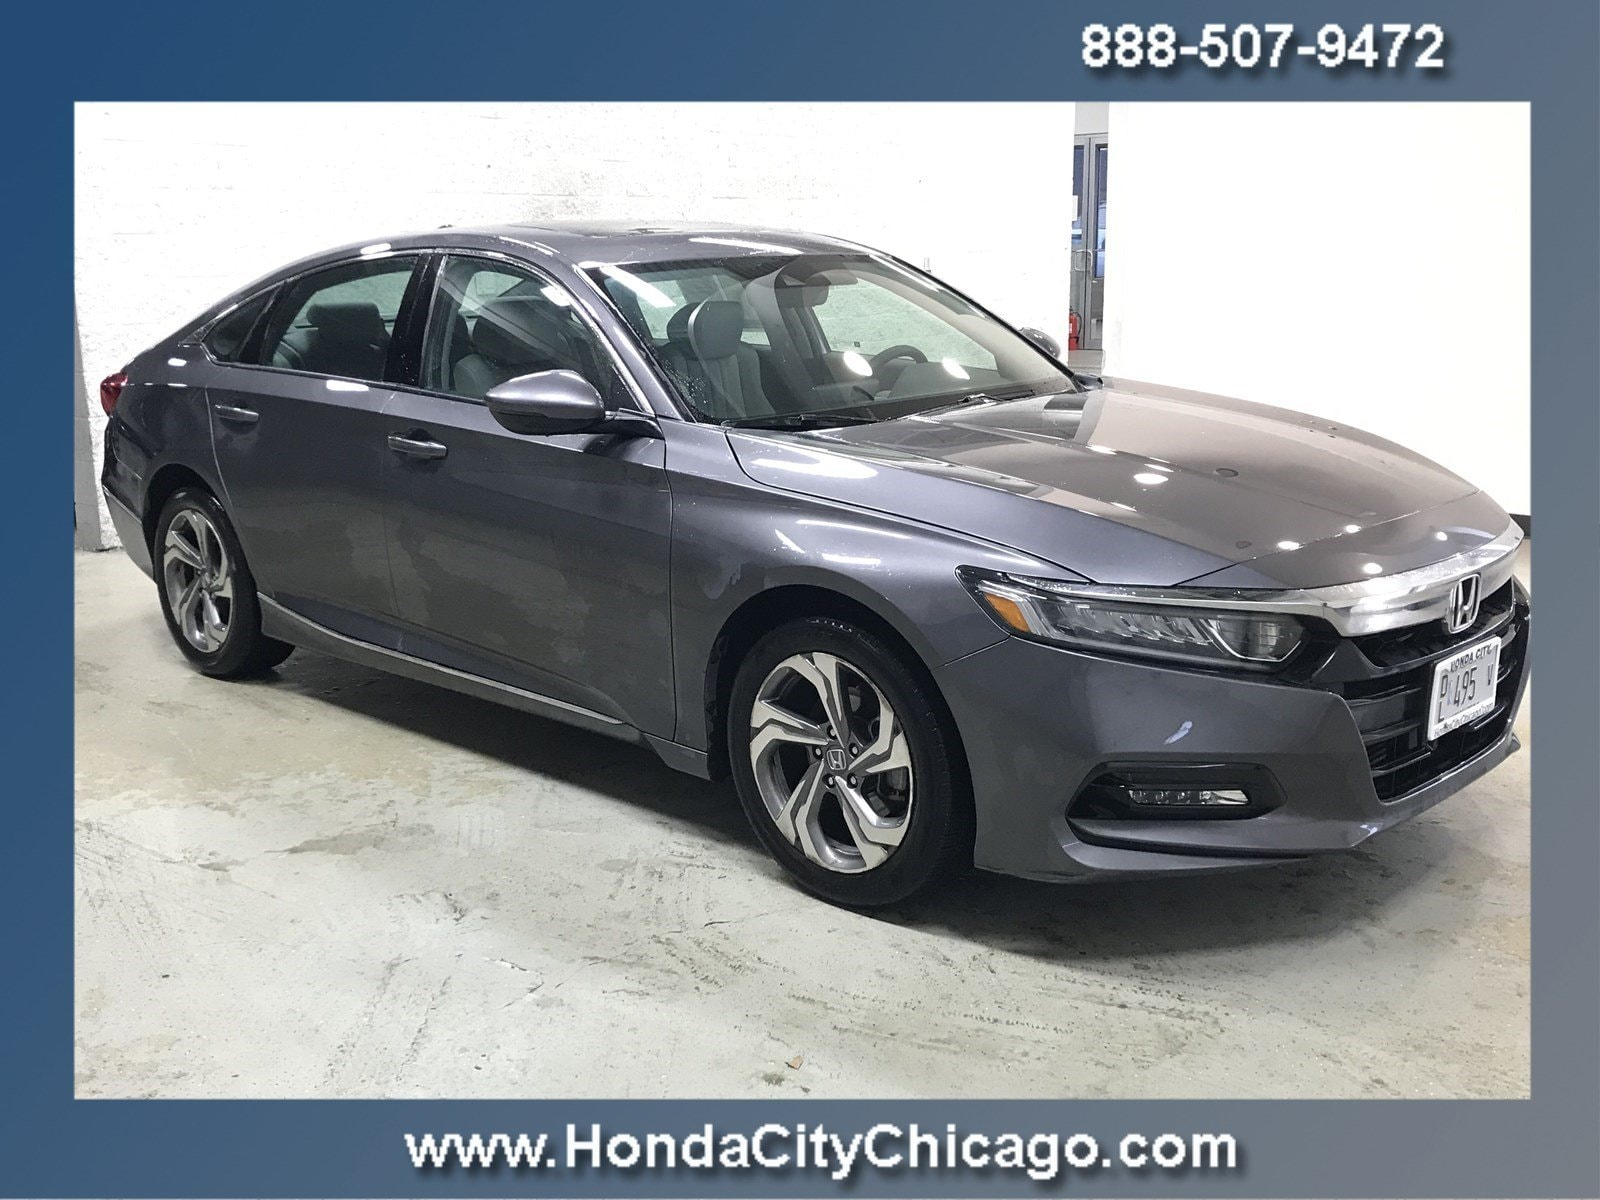 2018 Honda Accord Sedan EX-L 1.5T EX-L 1.5T CVT